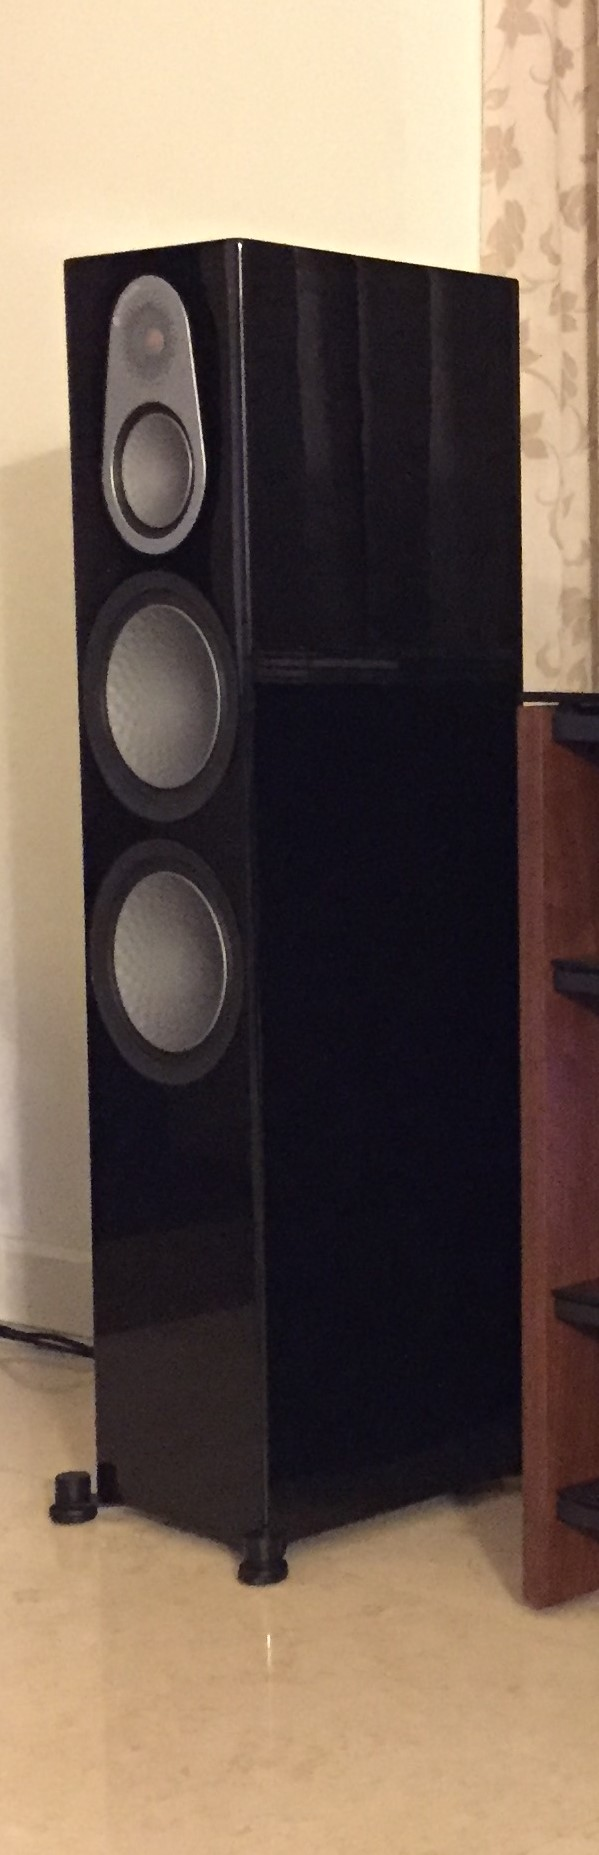 Monitor Audio Silver 500 Speakers (used) Left_210